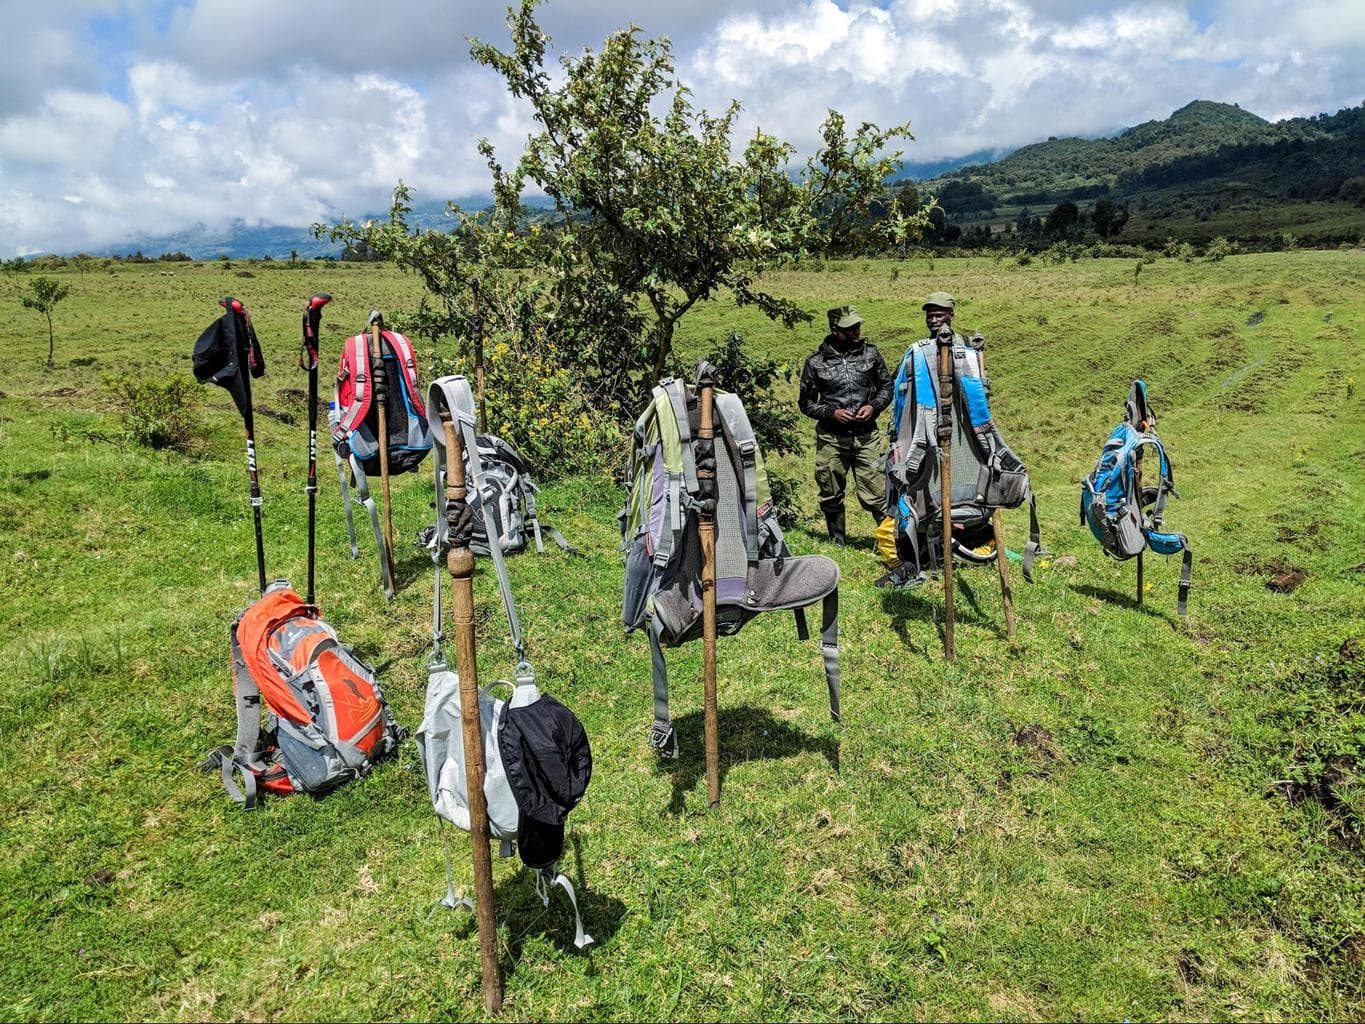 The backpacks worn by my gorilla trekking group